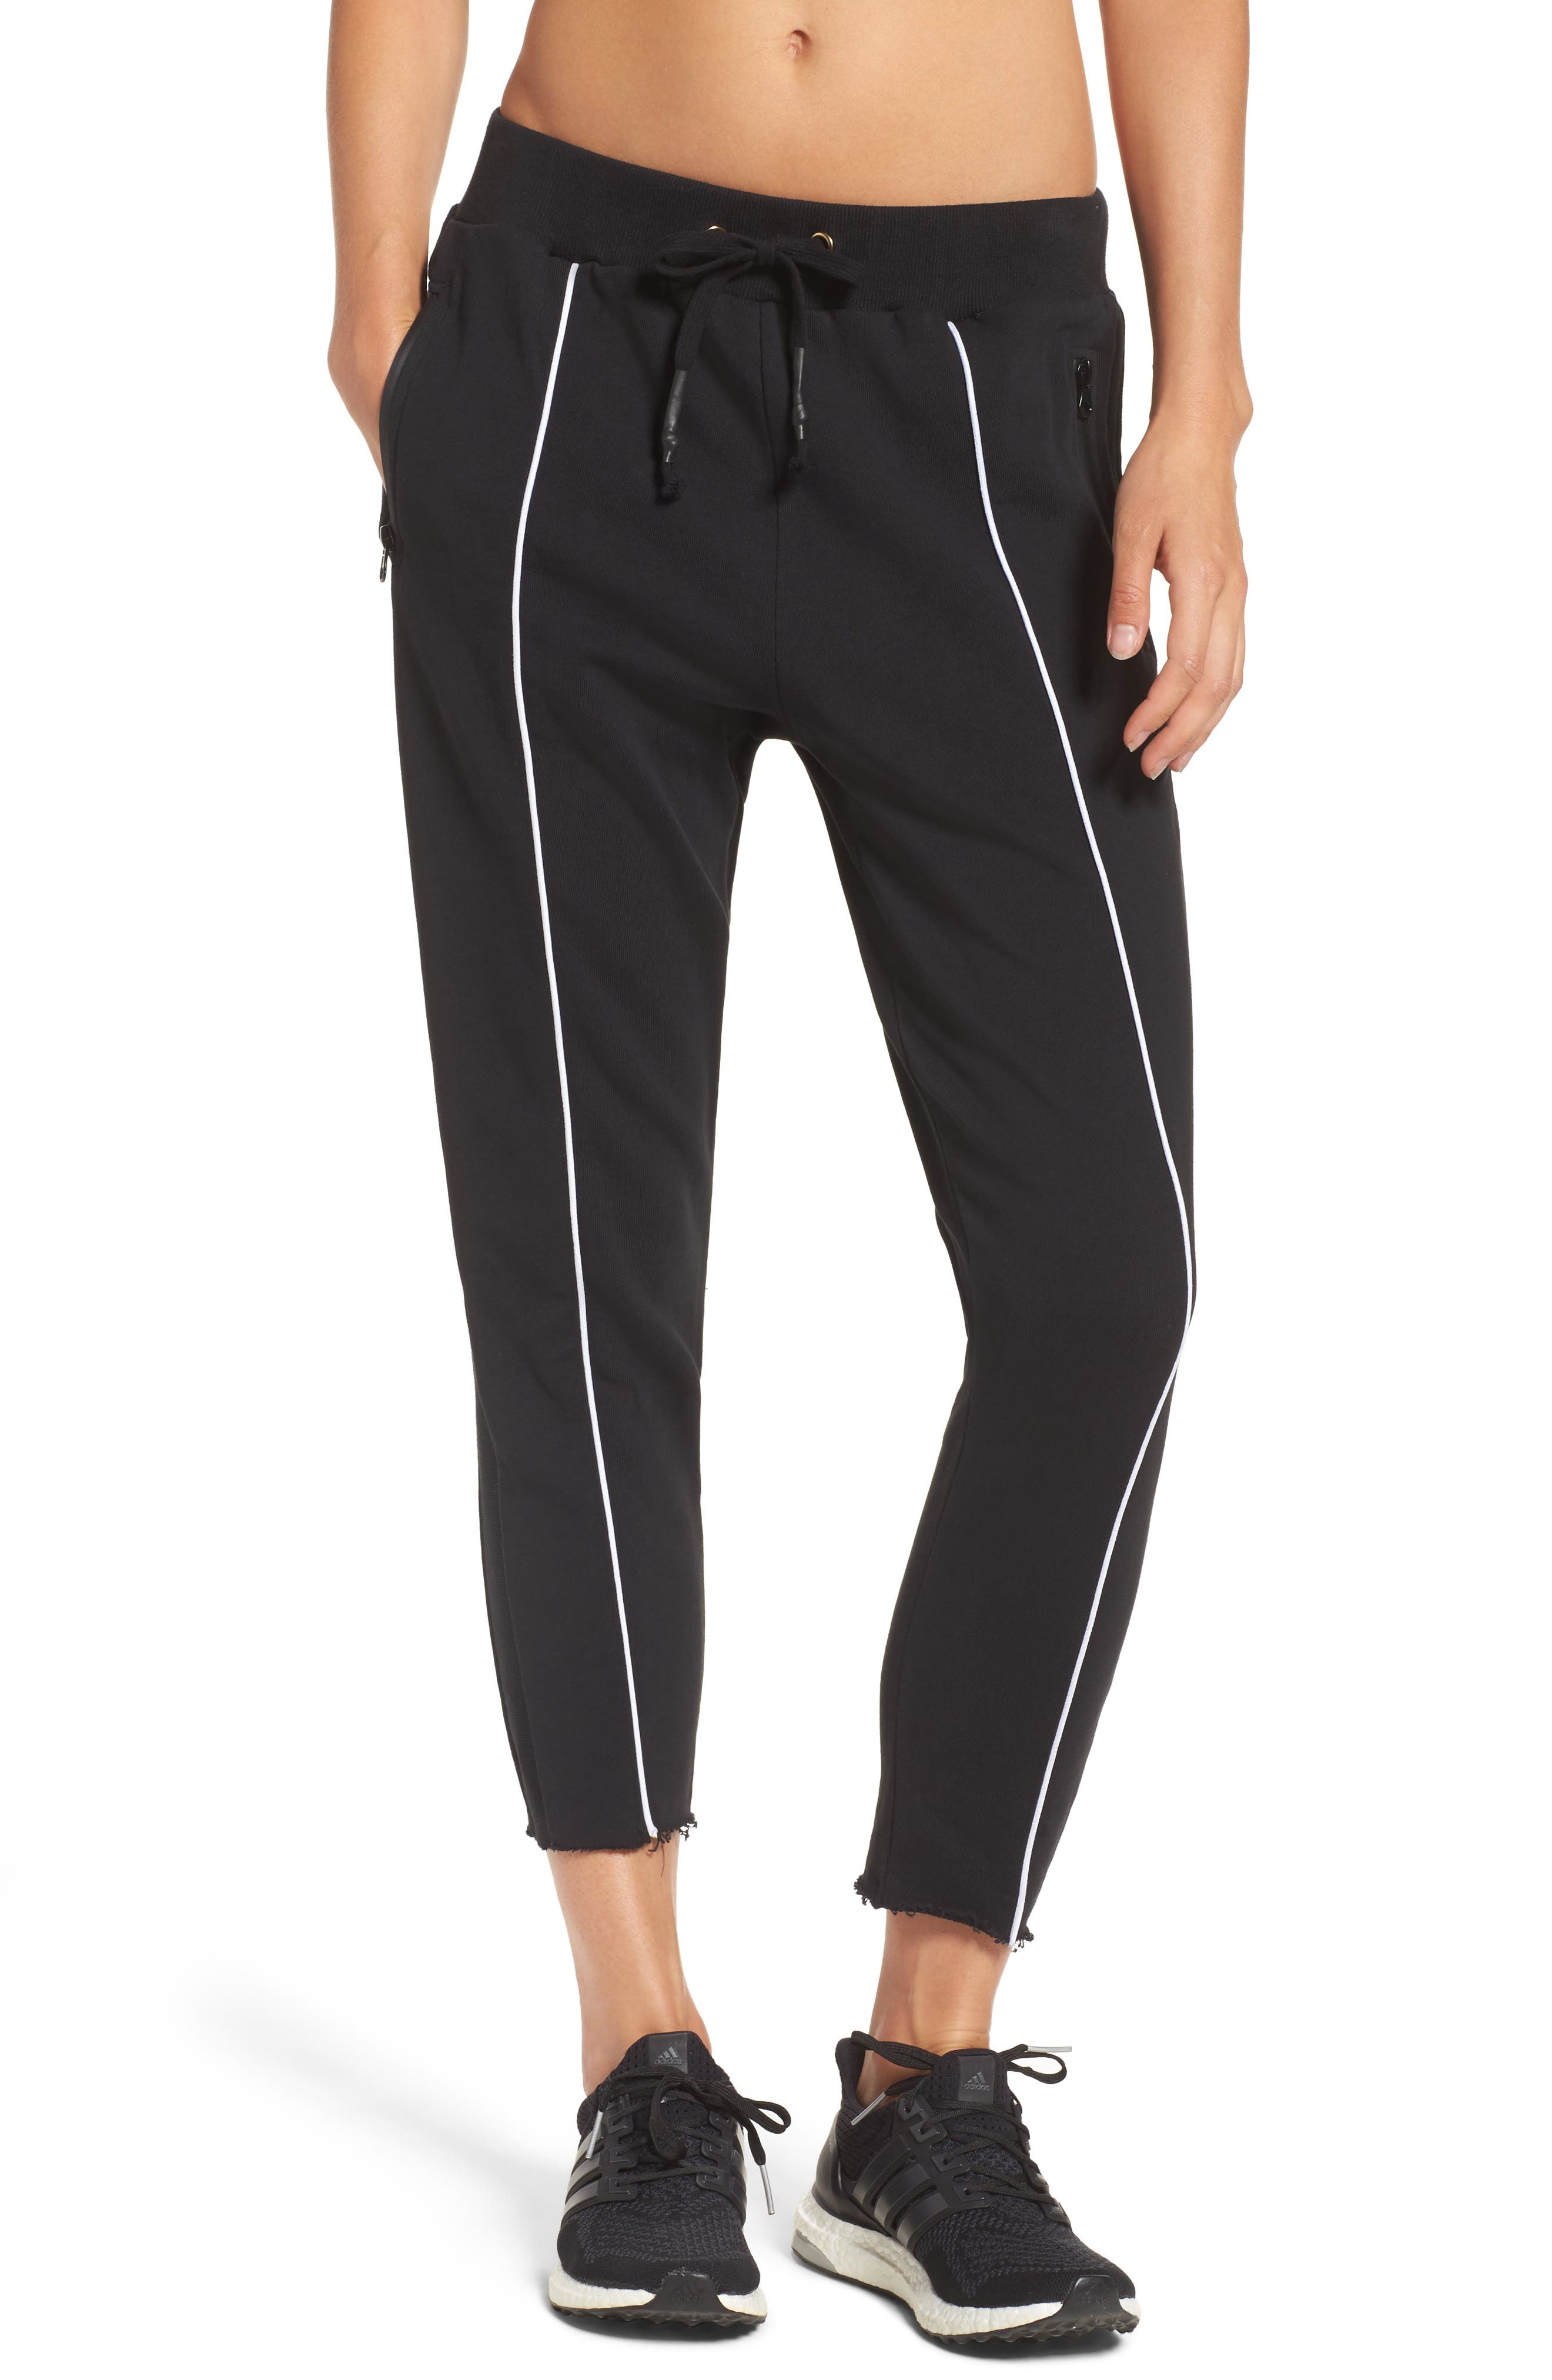 Deuce Track Pants,                         Main,                         color, Black